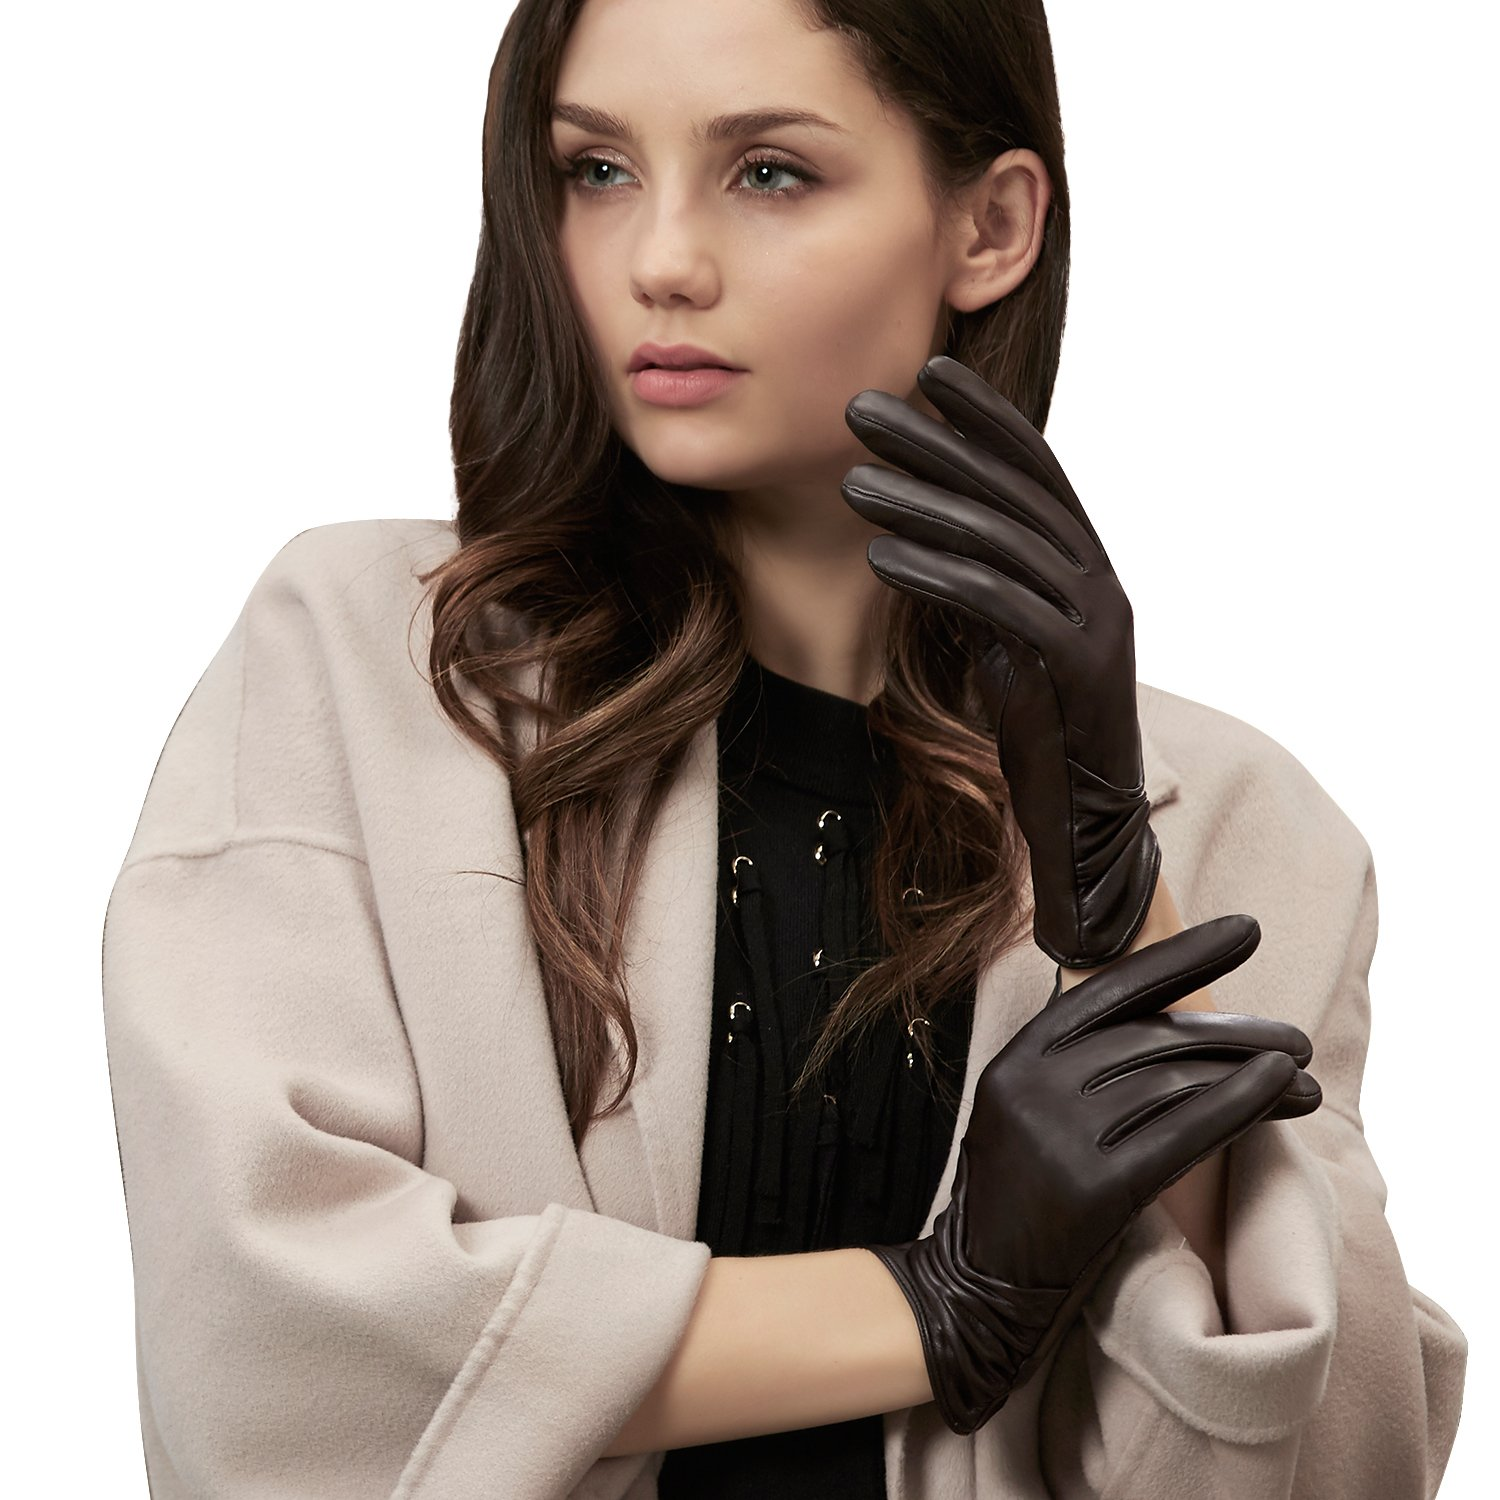 GSG Womens Driving Leather Gloves Ruched Fish Mouth Touchscreen Gloves Ladies Warm Winter Outdoor Brown 8